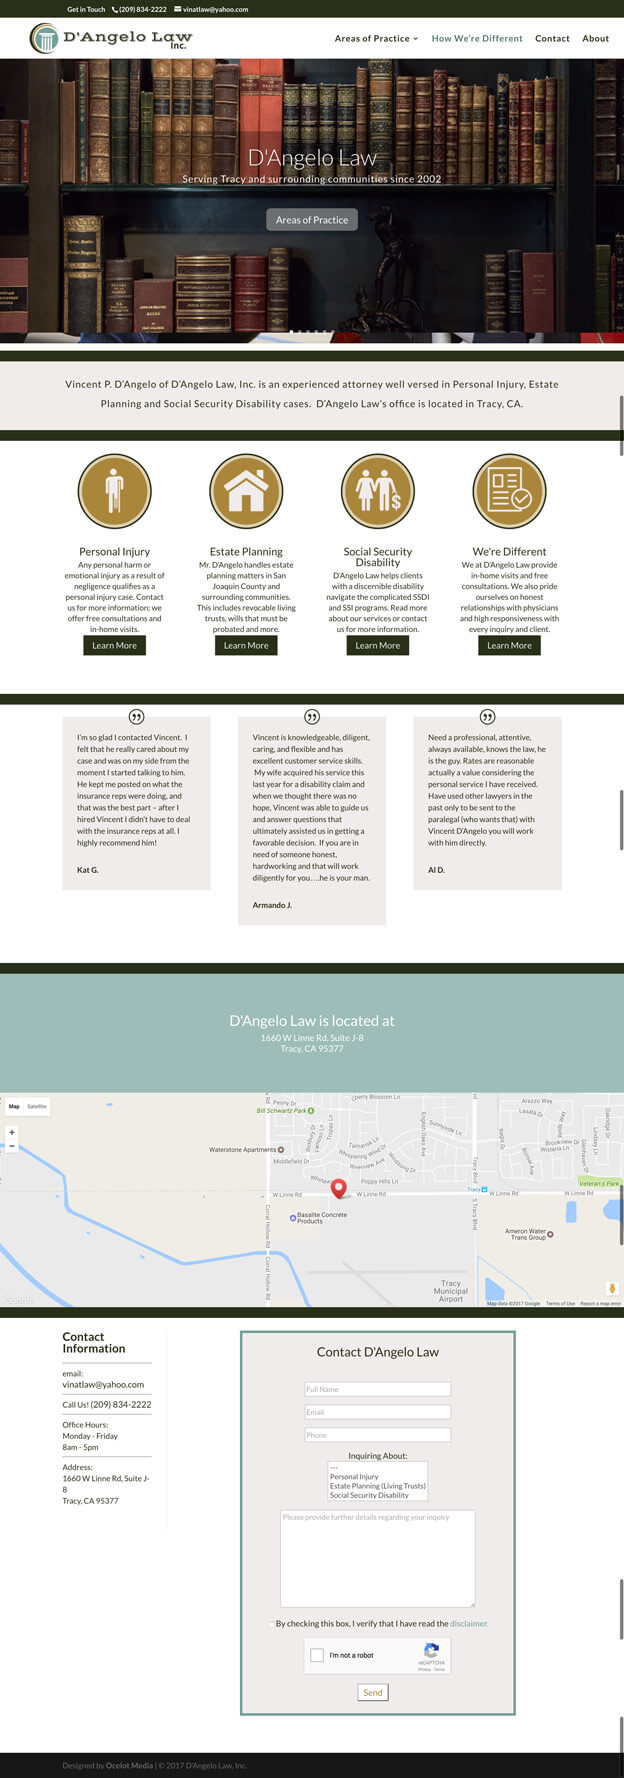 D'Angelo Law, Inc. in Tracy, CA - web design by Ocelot Media